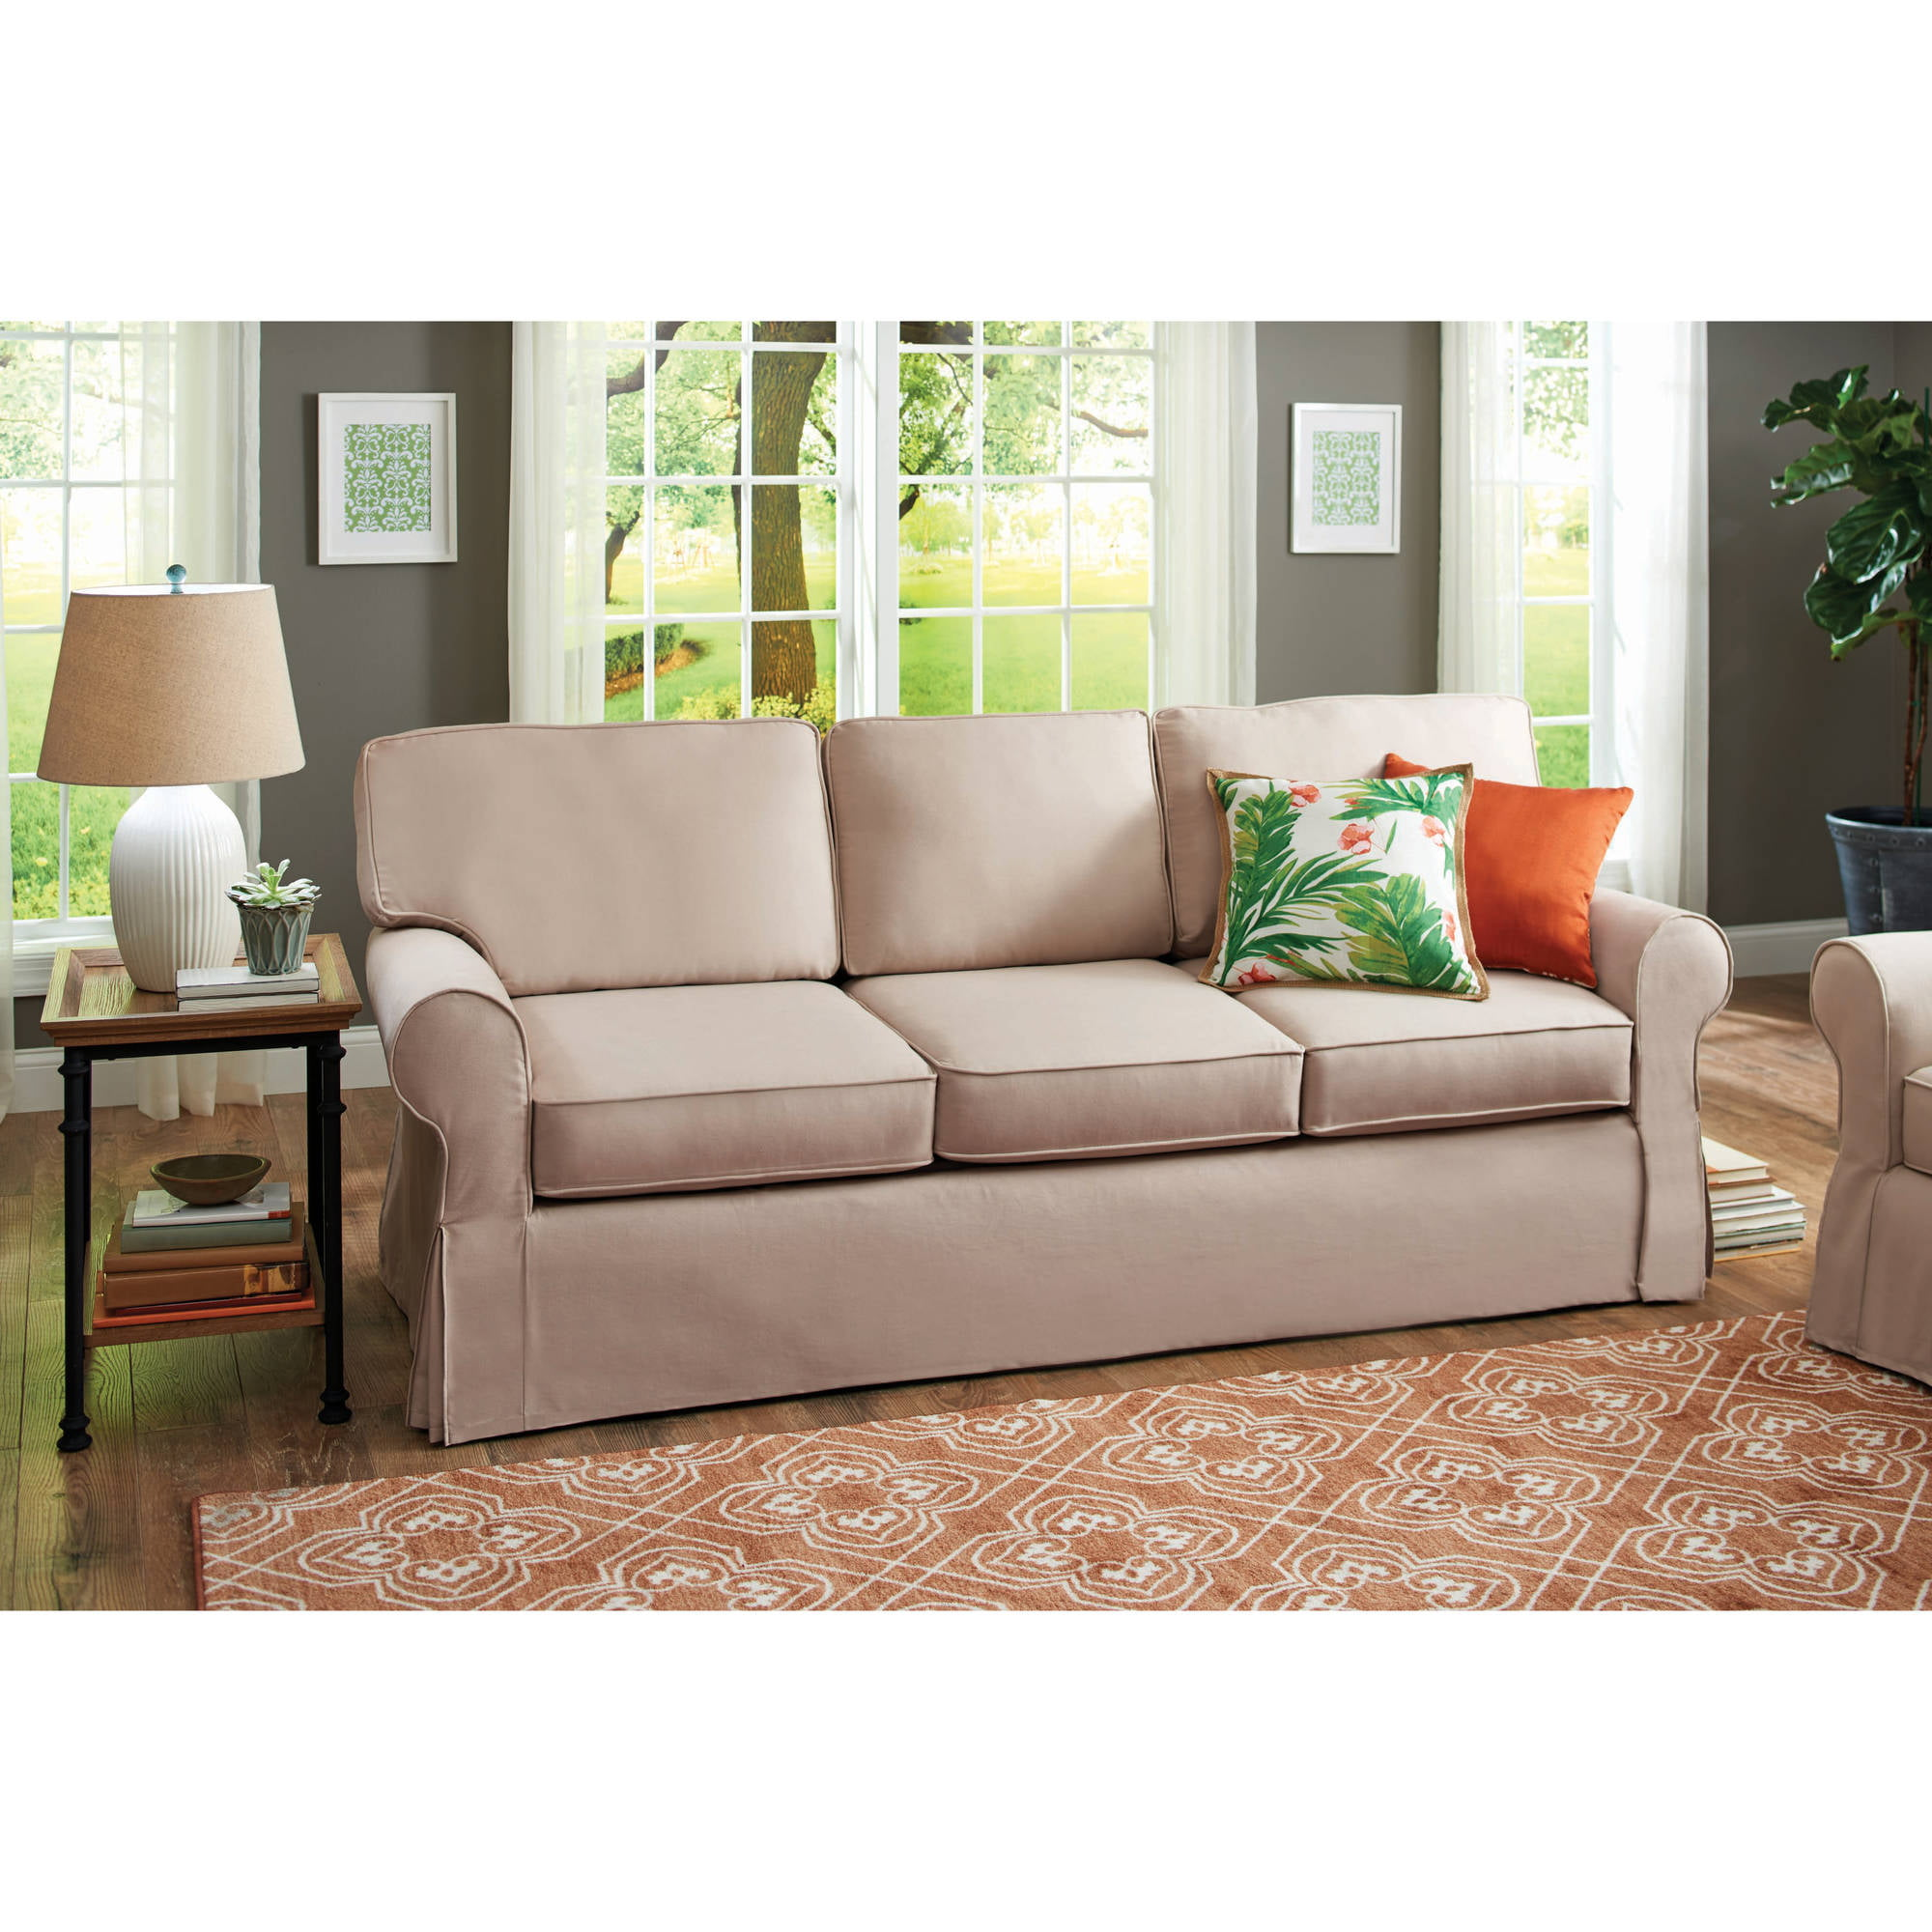 Better Homes and Gardens Slip Cover Pala Sofa Multiple Colors